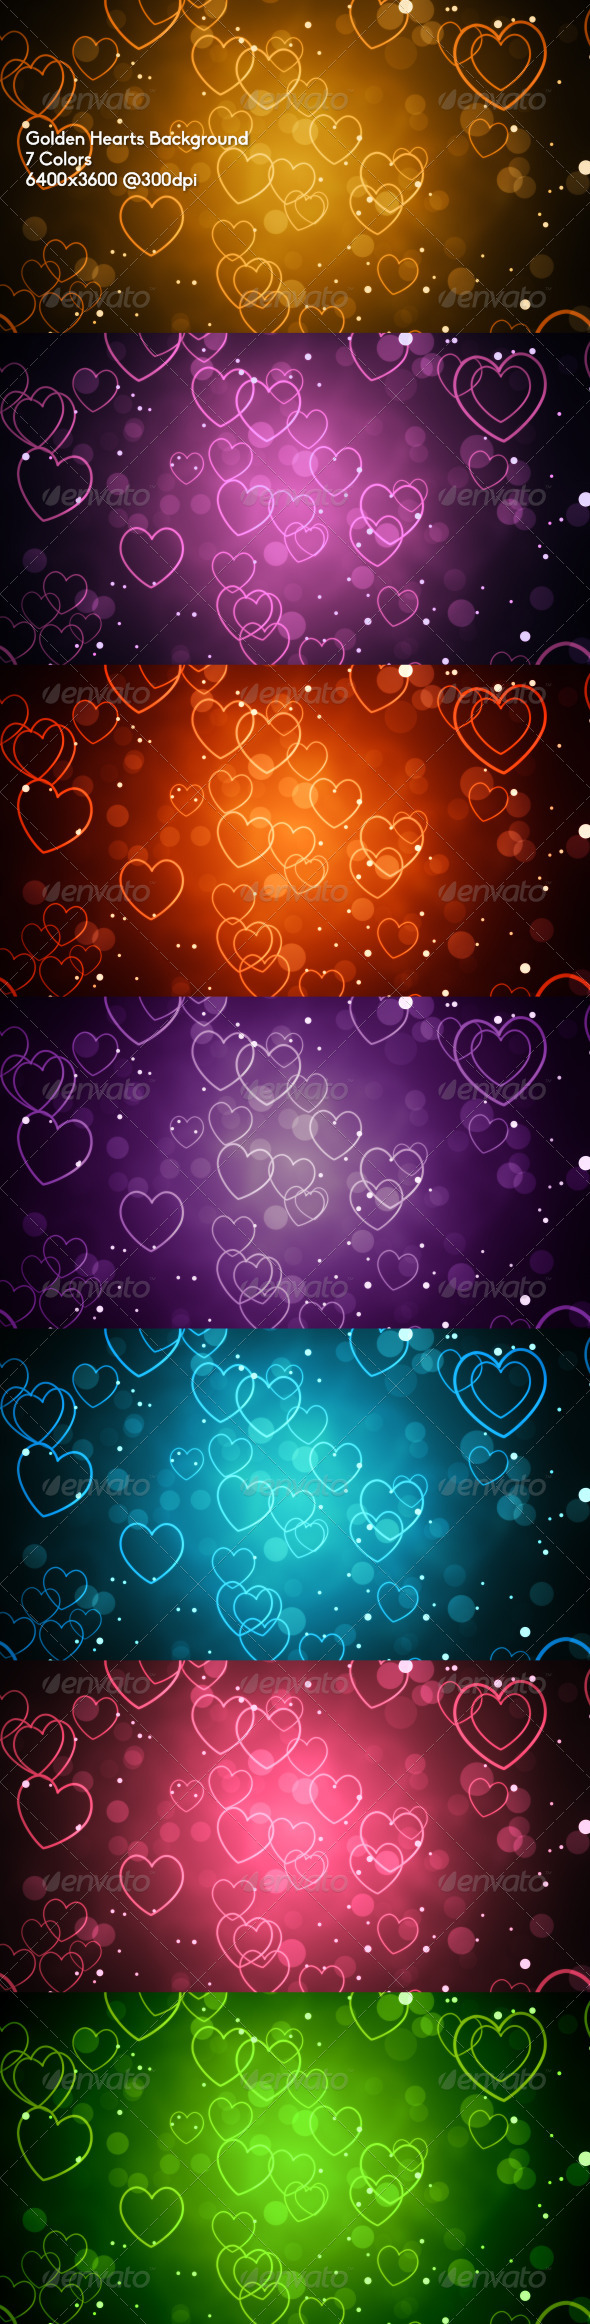 GraphicRiver Golden Hearts Background 6716796